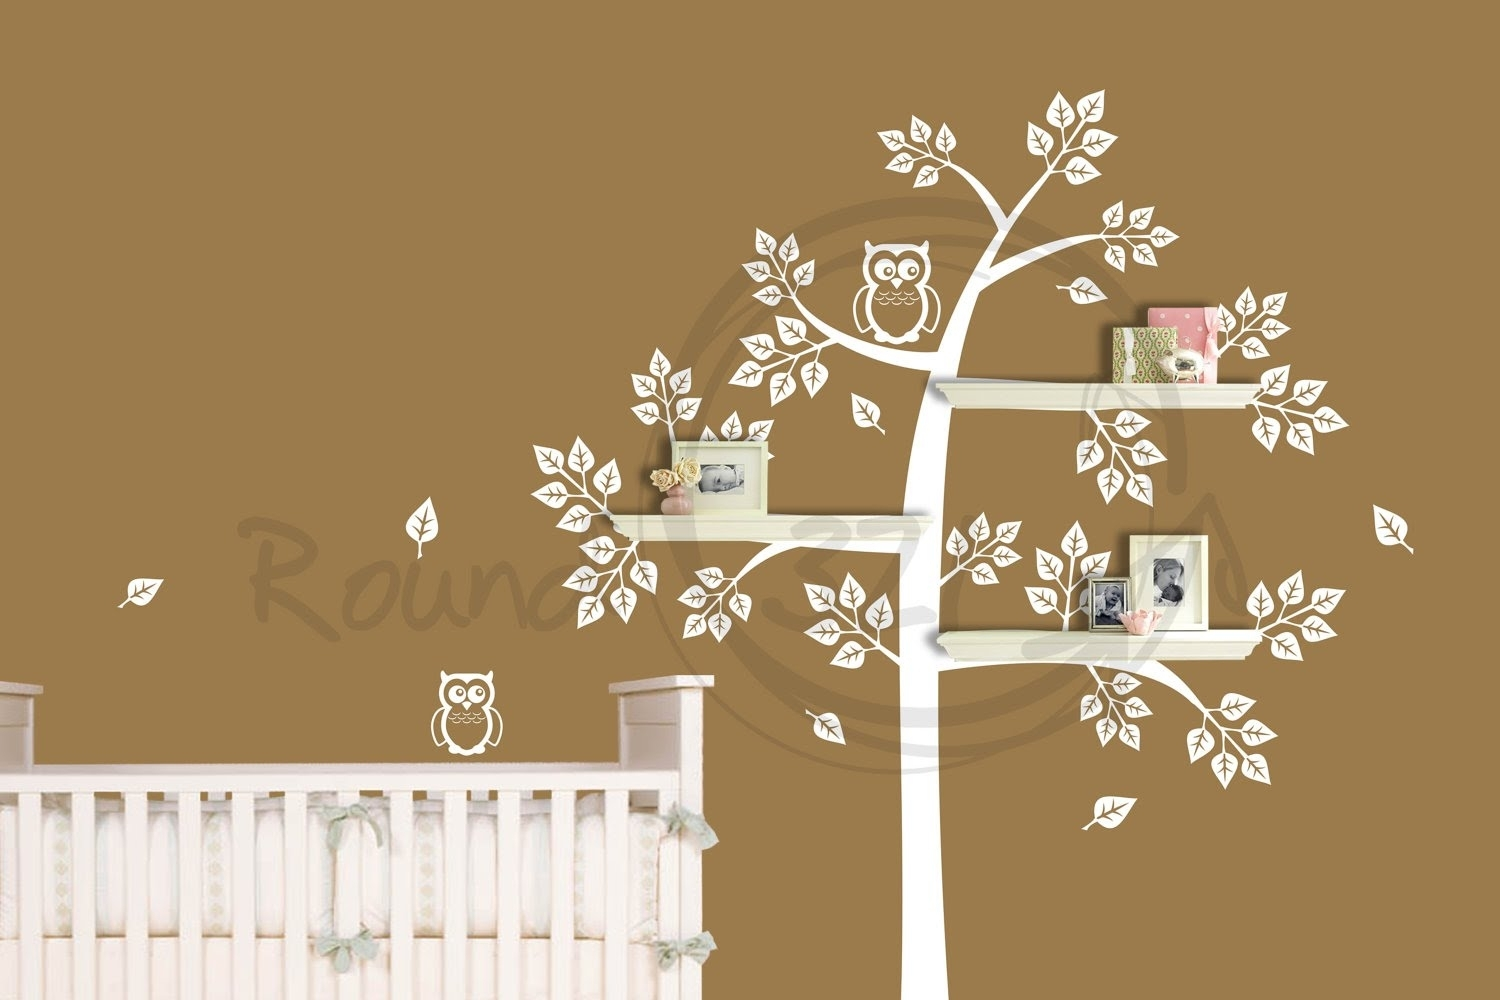 Baby Room Wall Decor~Baby Room Wall Art Ideas – Youtube With Regard To Most Current Baby Room Wall Art (View 5 of 20)